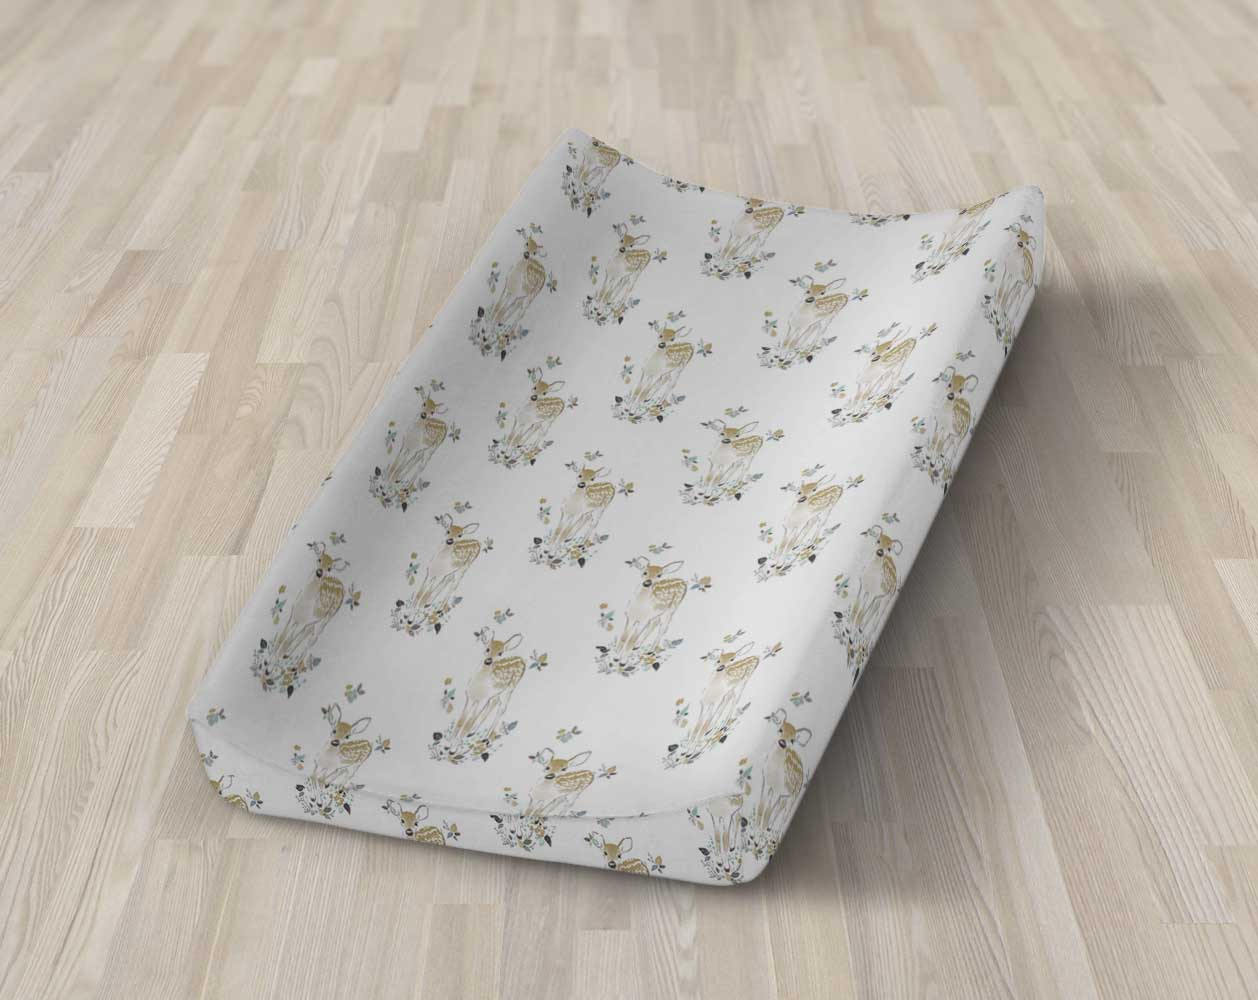 Fawn Changing Pad Cover- Deer Change Pad Cover - Buck Diaper Change Mat - Woodland Crib Sheet Set Rustic Nursery Bedding Gender Neutral Blue - Dream Evergreen @DreamEvergreen